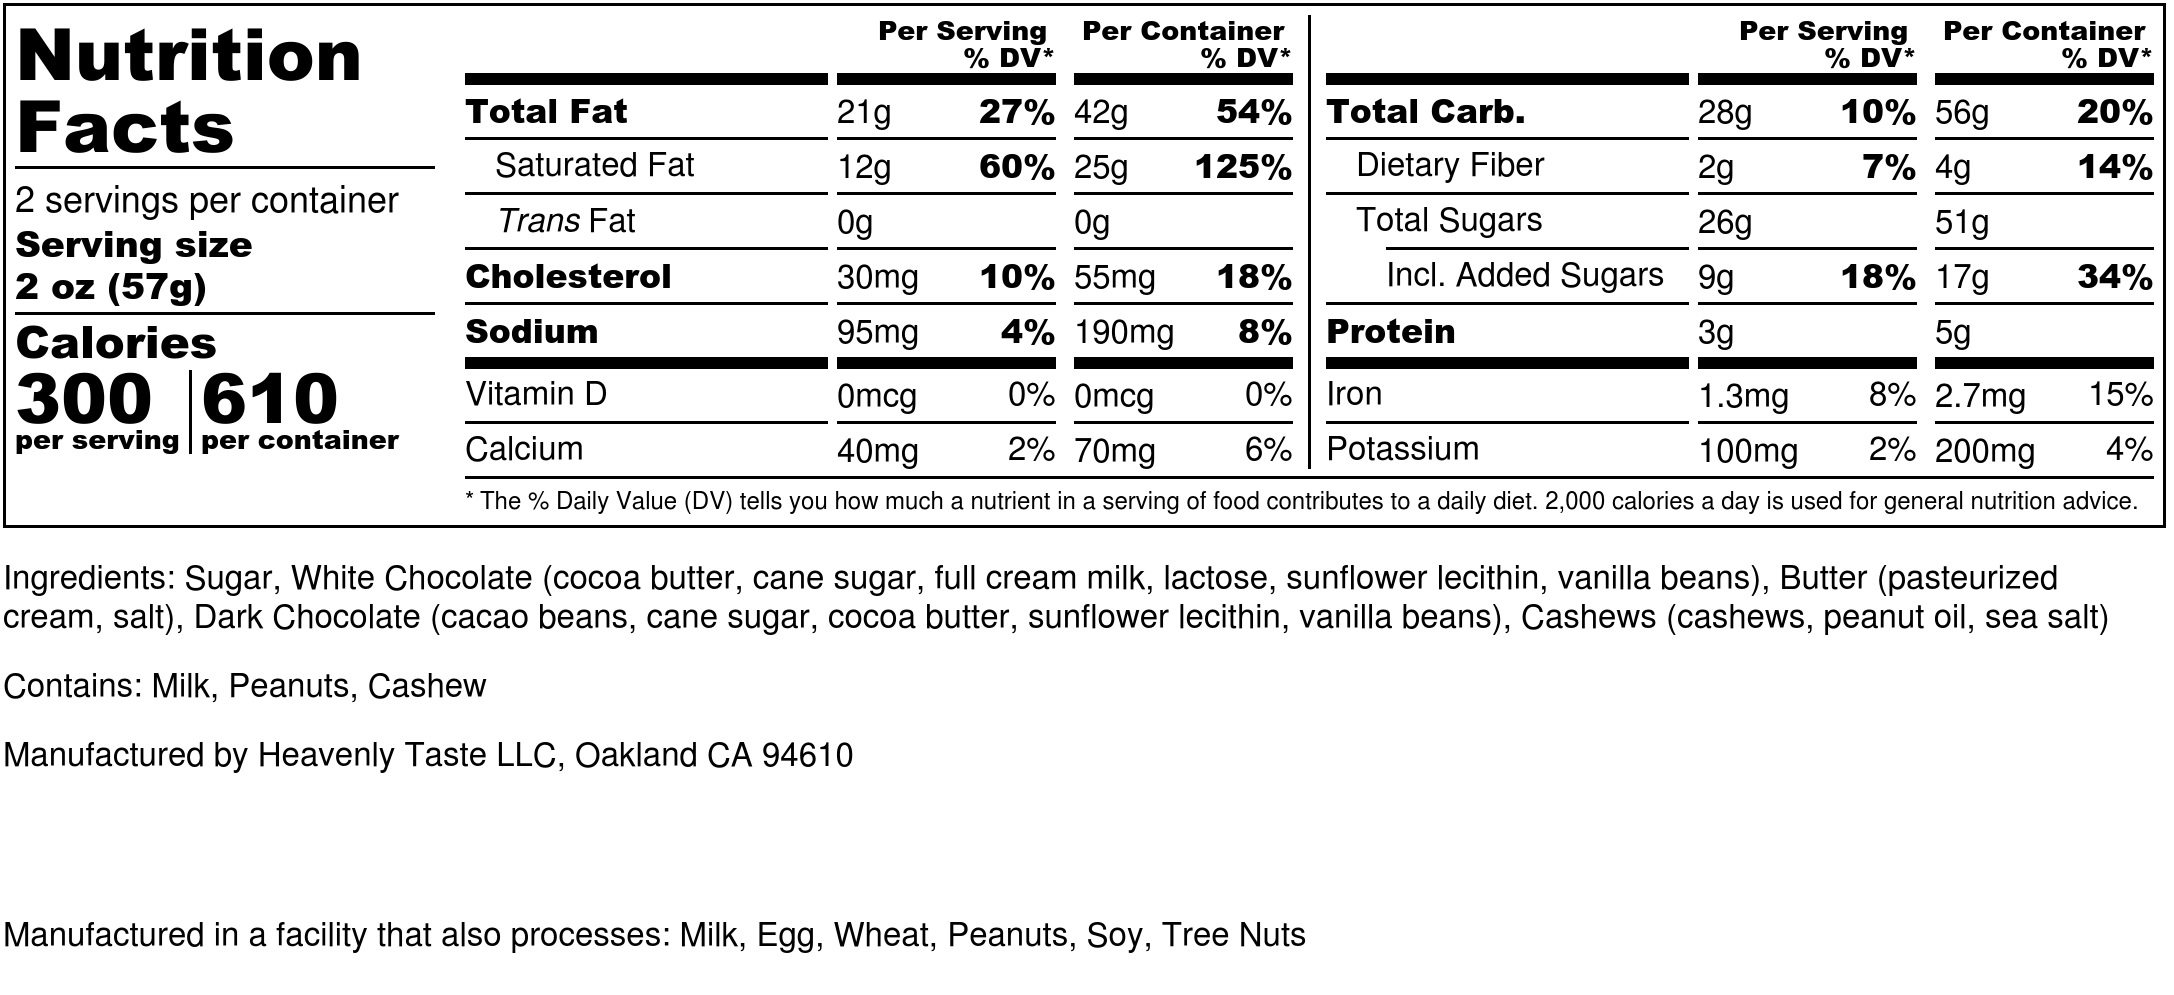 Black & White Toffee 4 oz - Nutrition Label (2).jpg